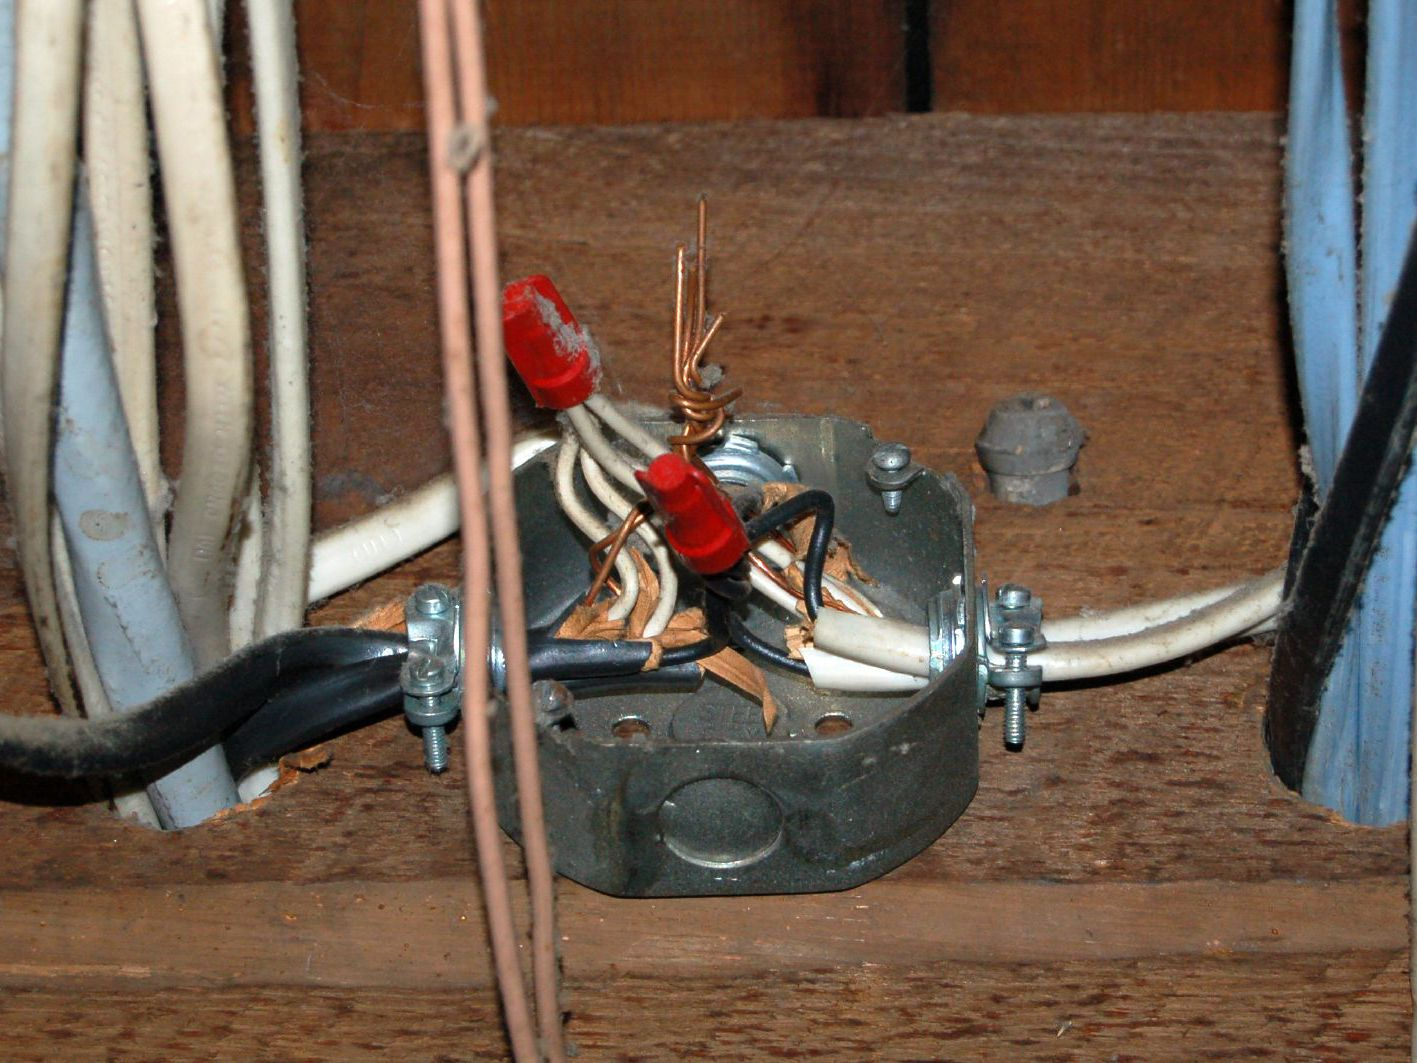 Tremendous Home Wiring Basics That You Should Know Wiring Cloud Brecesaoduqqnet